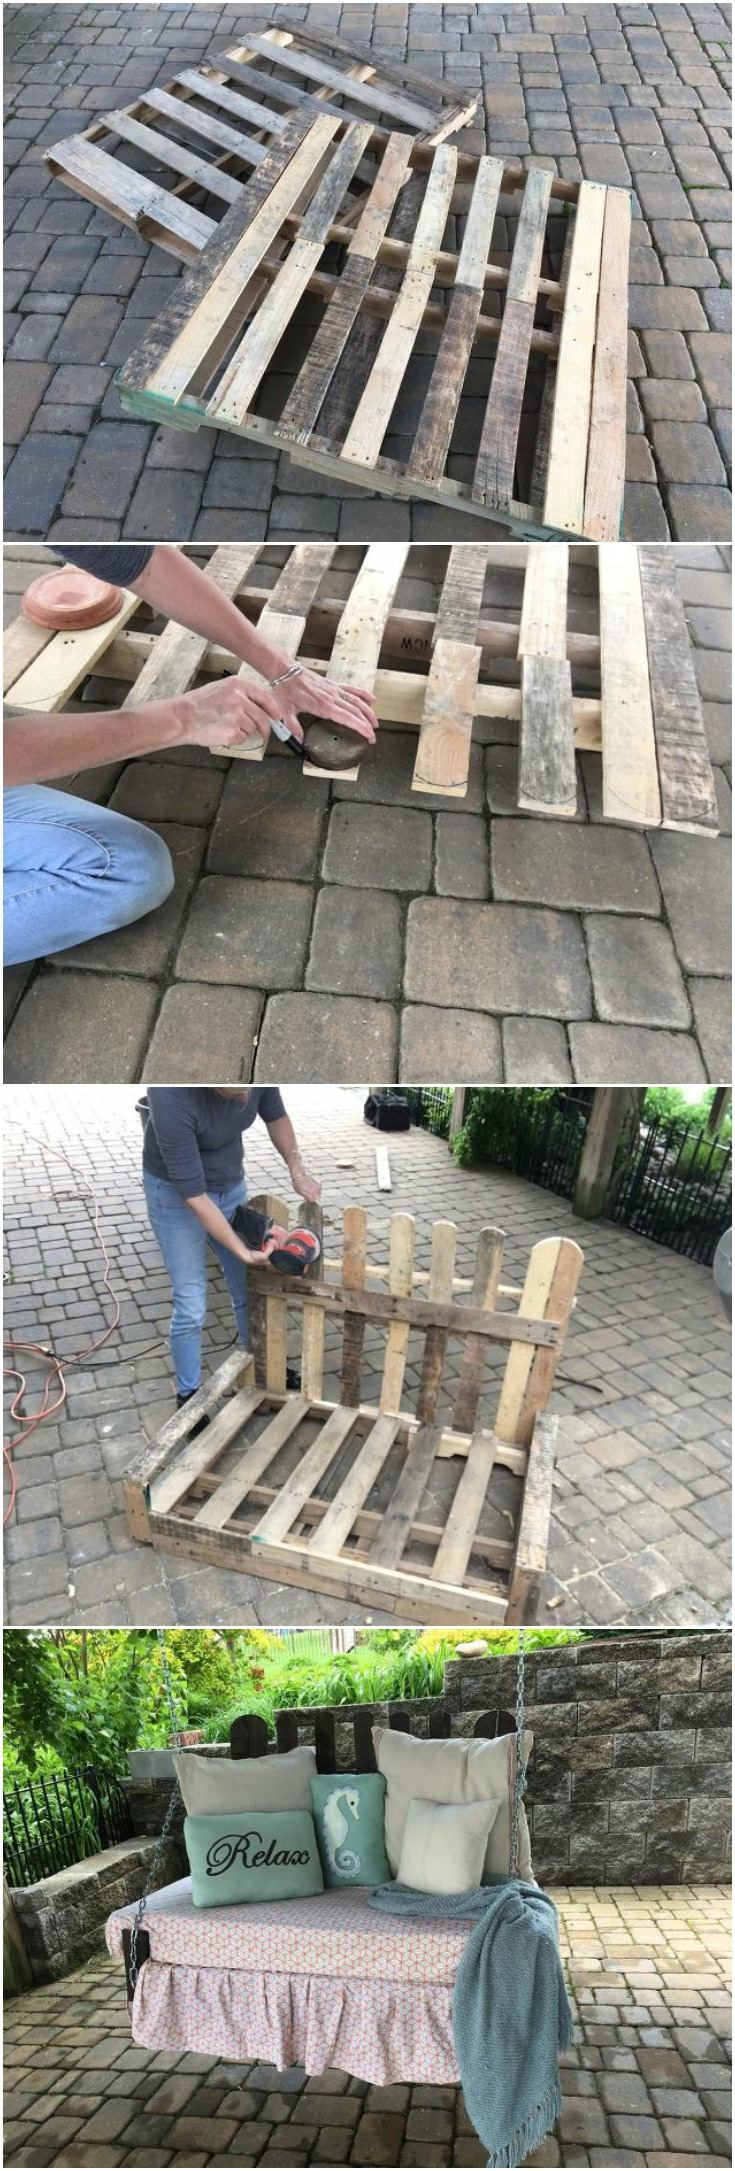 Make a pallet swing for $40! I've seen quite a few pallet swing projects that use extra wood in addition to the pallet wood; however, this swing only uses the wood from two pallets.